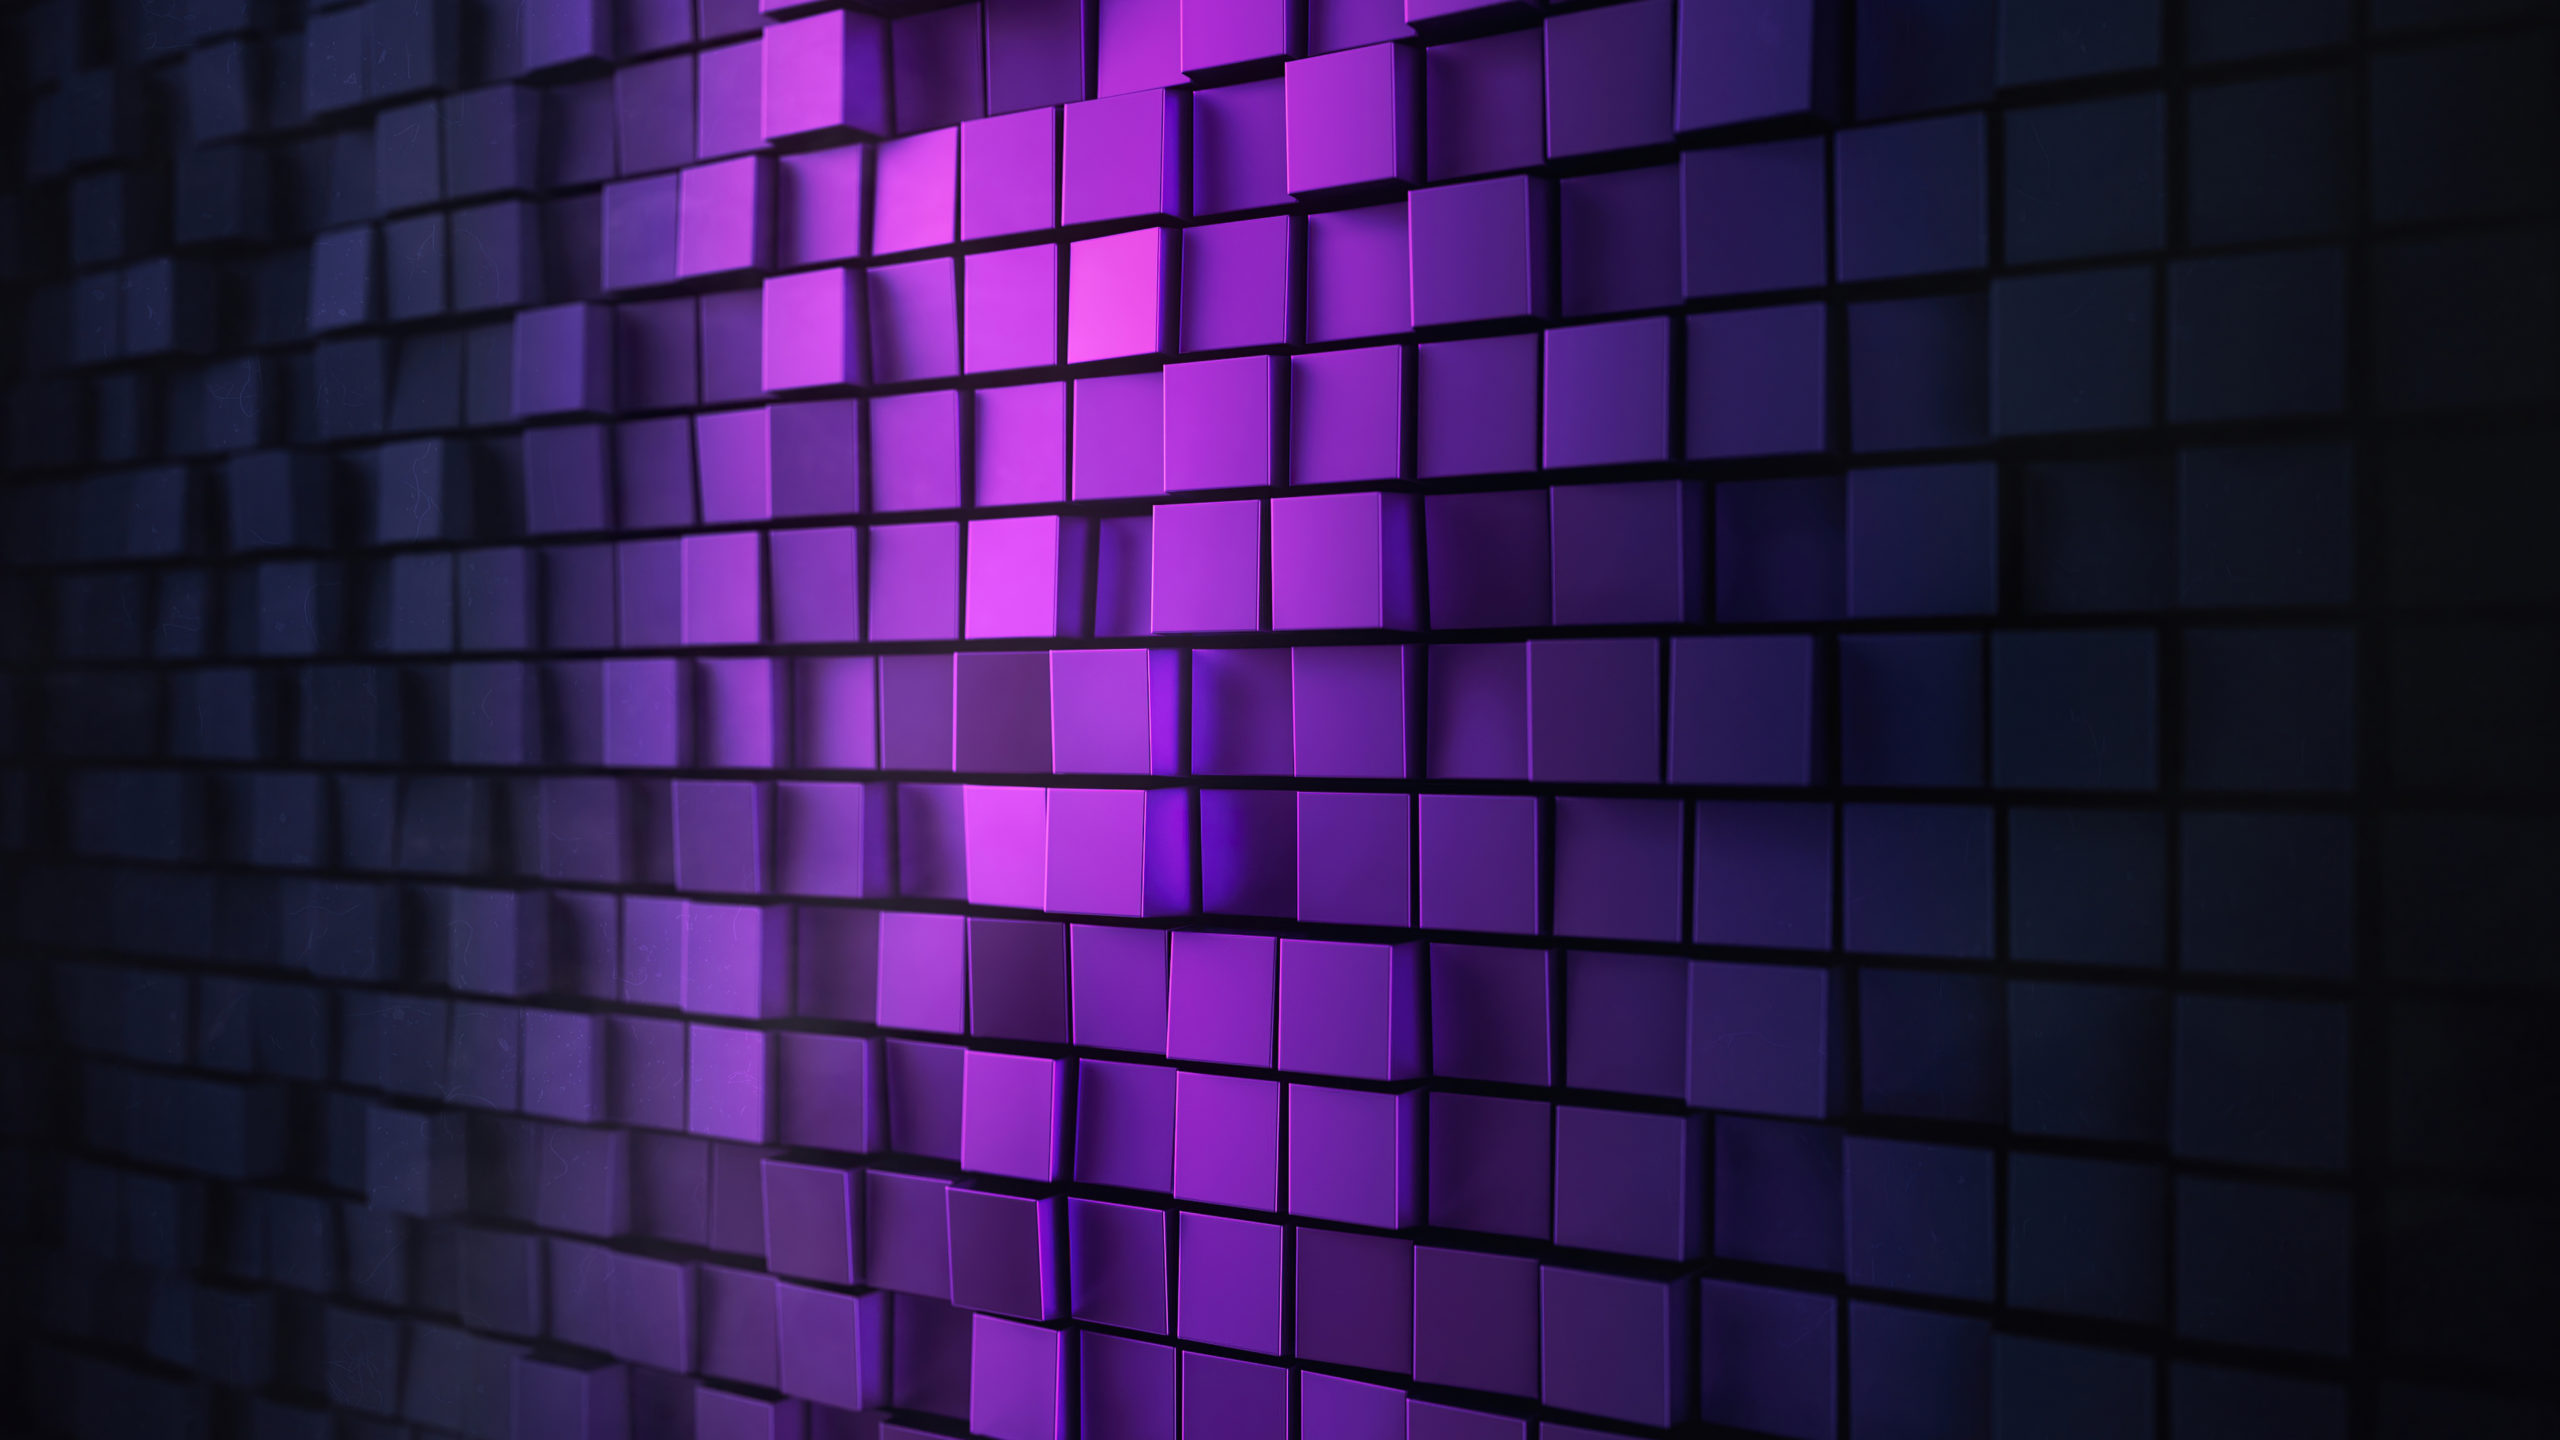 3D PURPLE WALL ABSTRACT 4K PM WALLPAPER